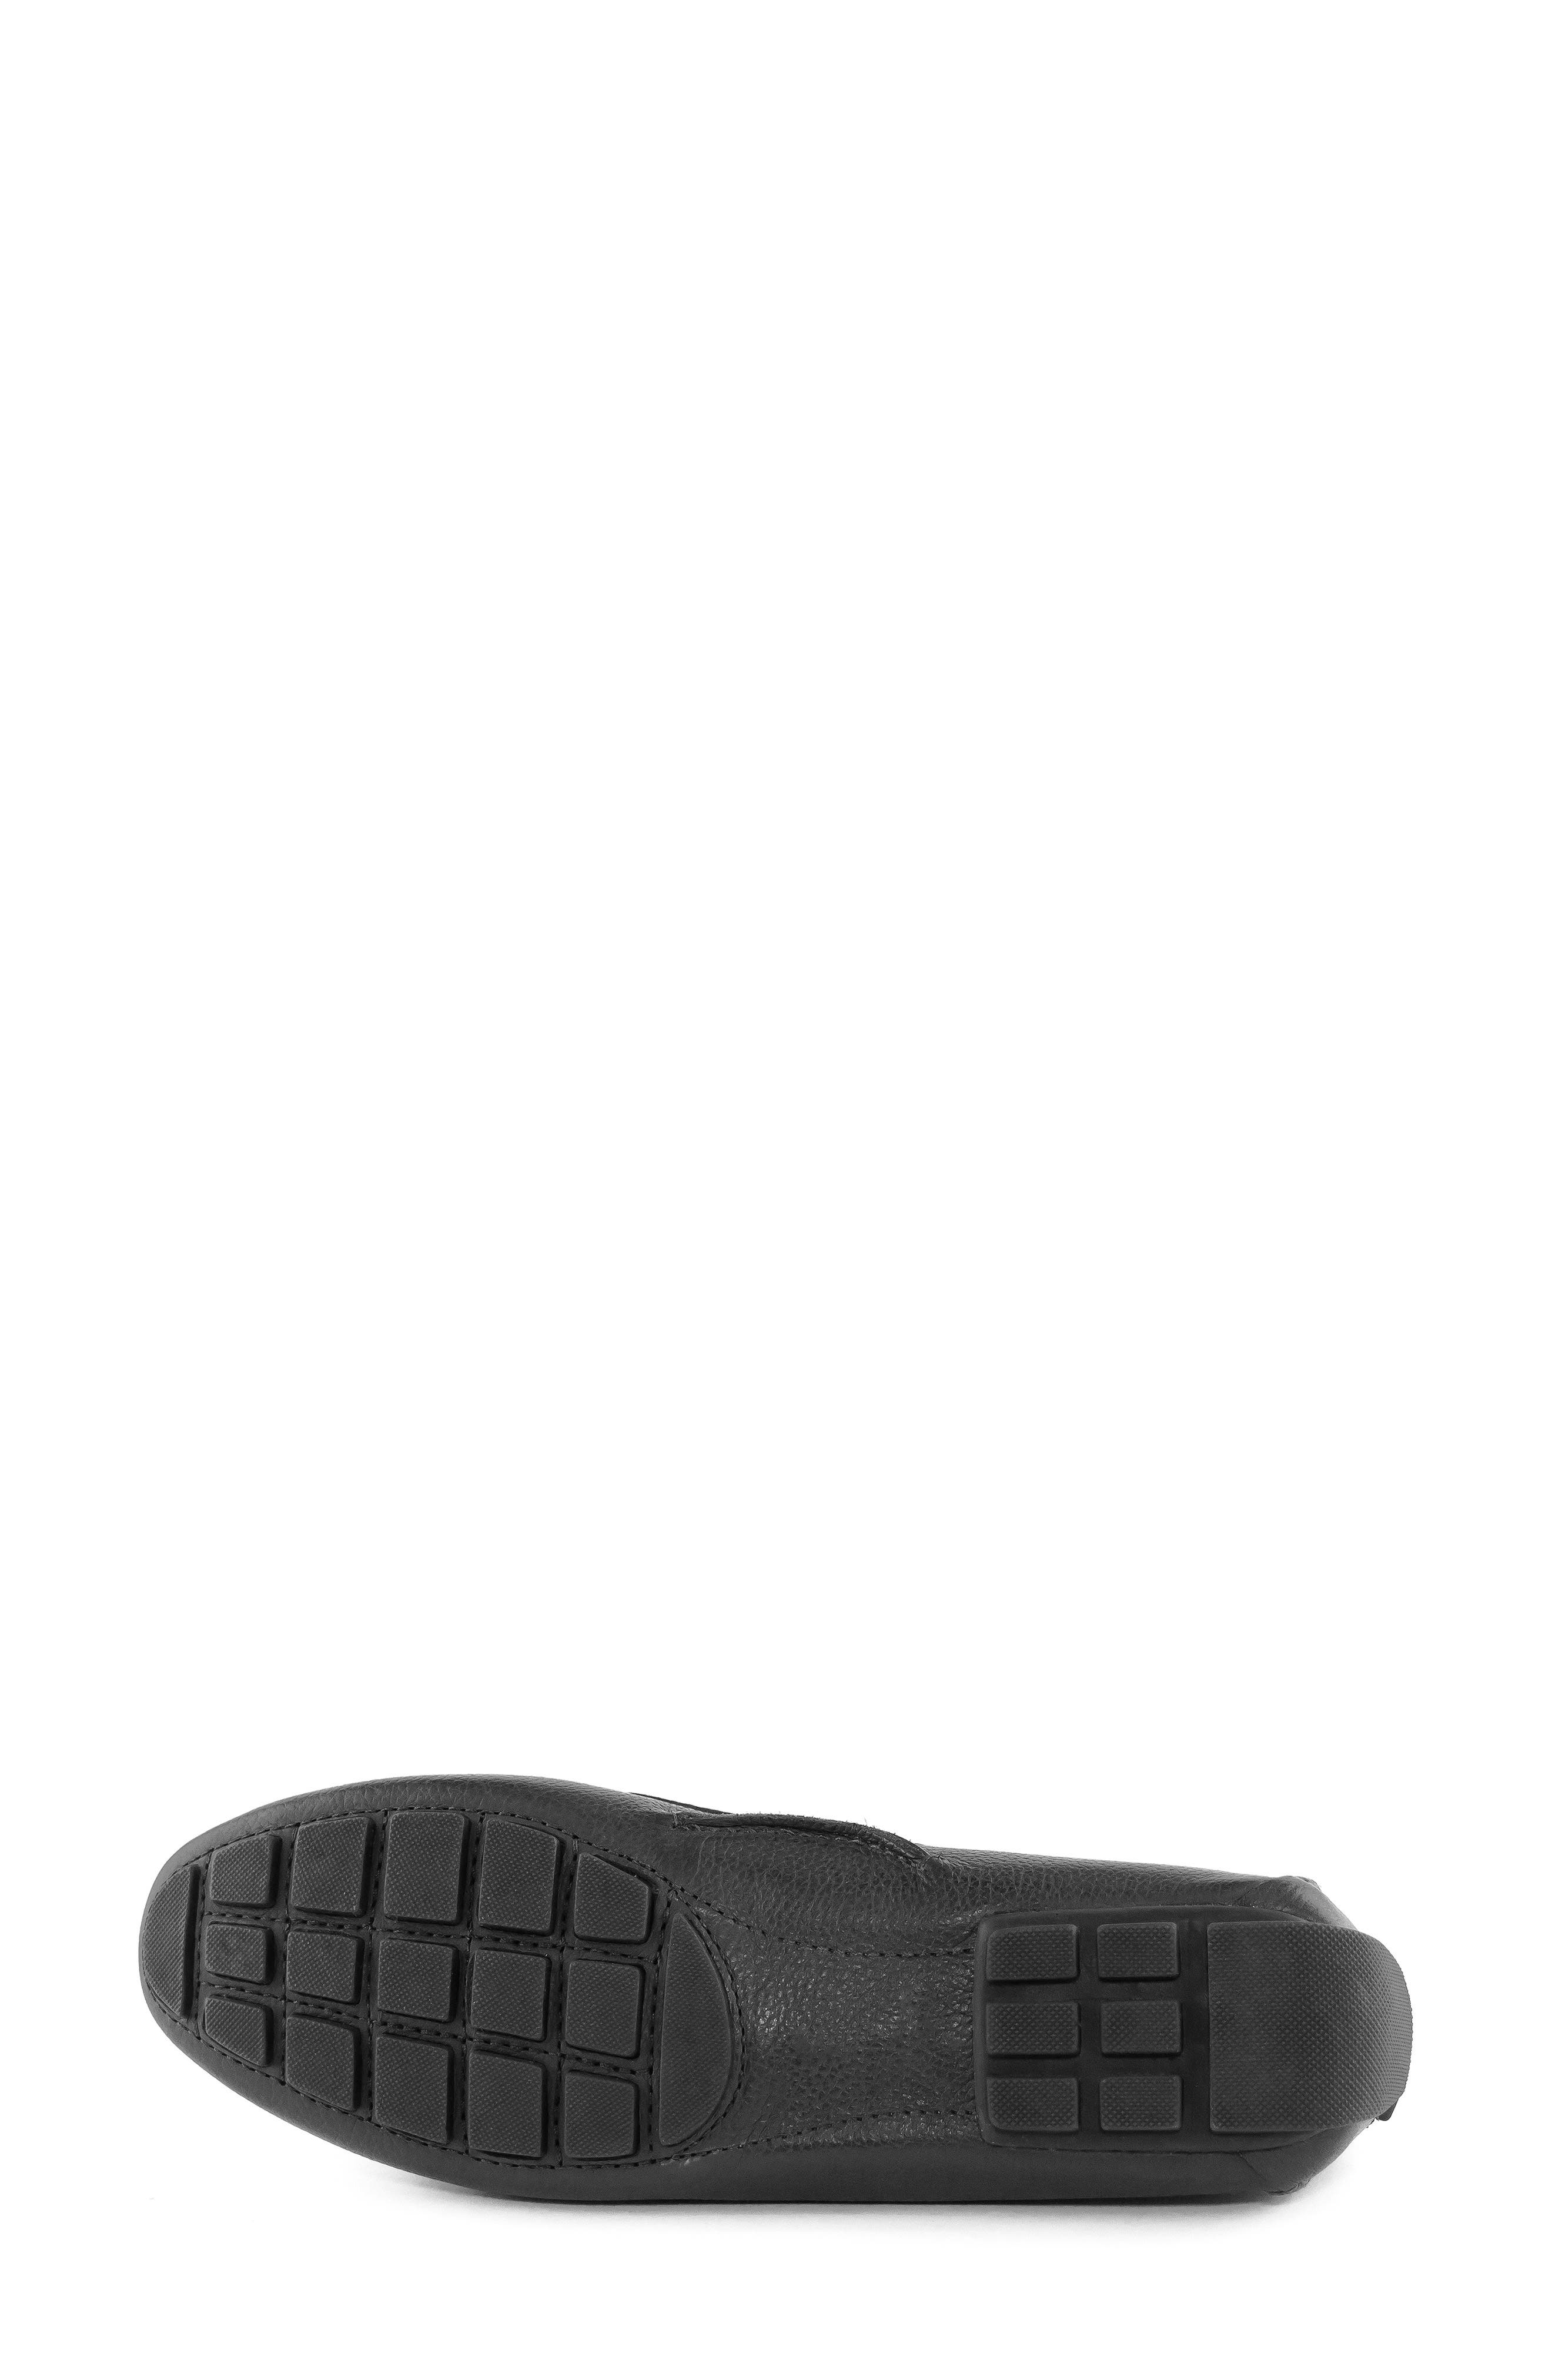 MARC JOSEPH NEW YORK, Rockaway Loafer, Alternate thumbnail 5, color, BLACK LEATHER